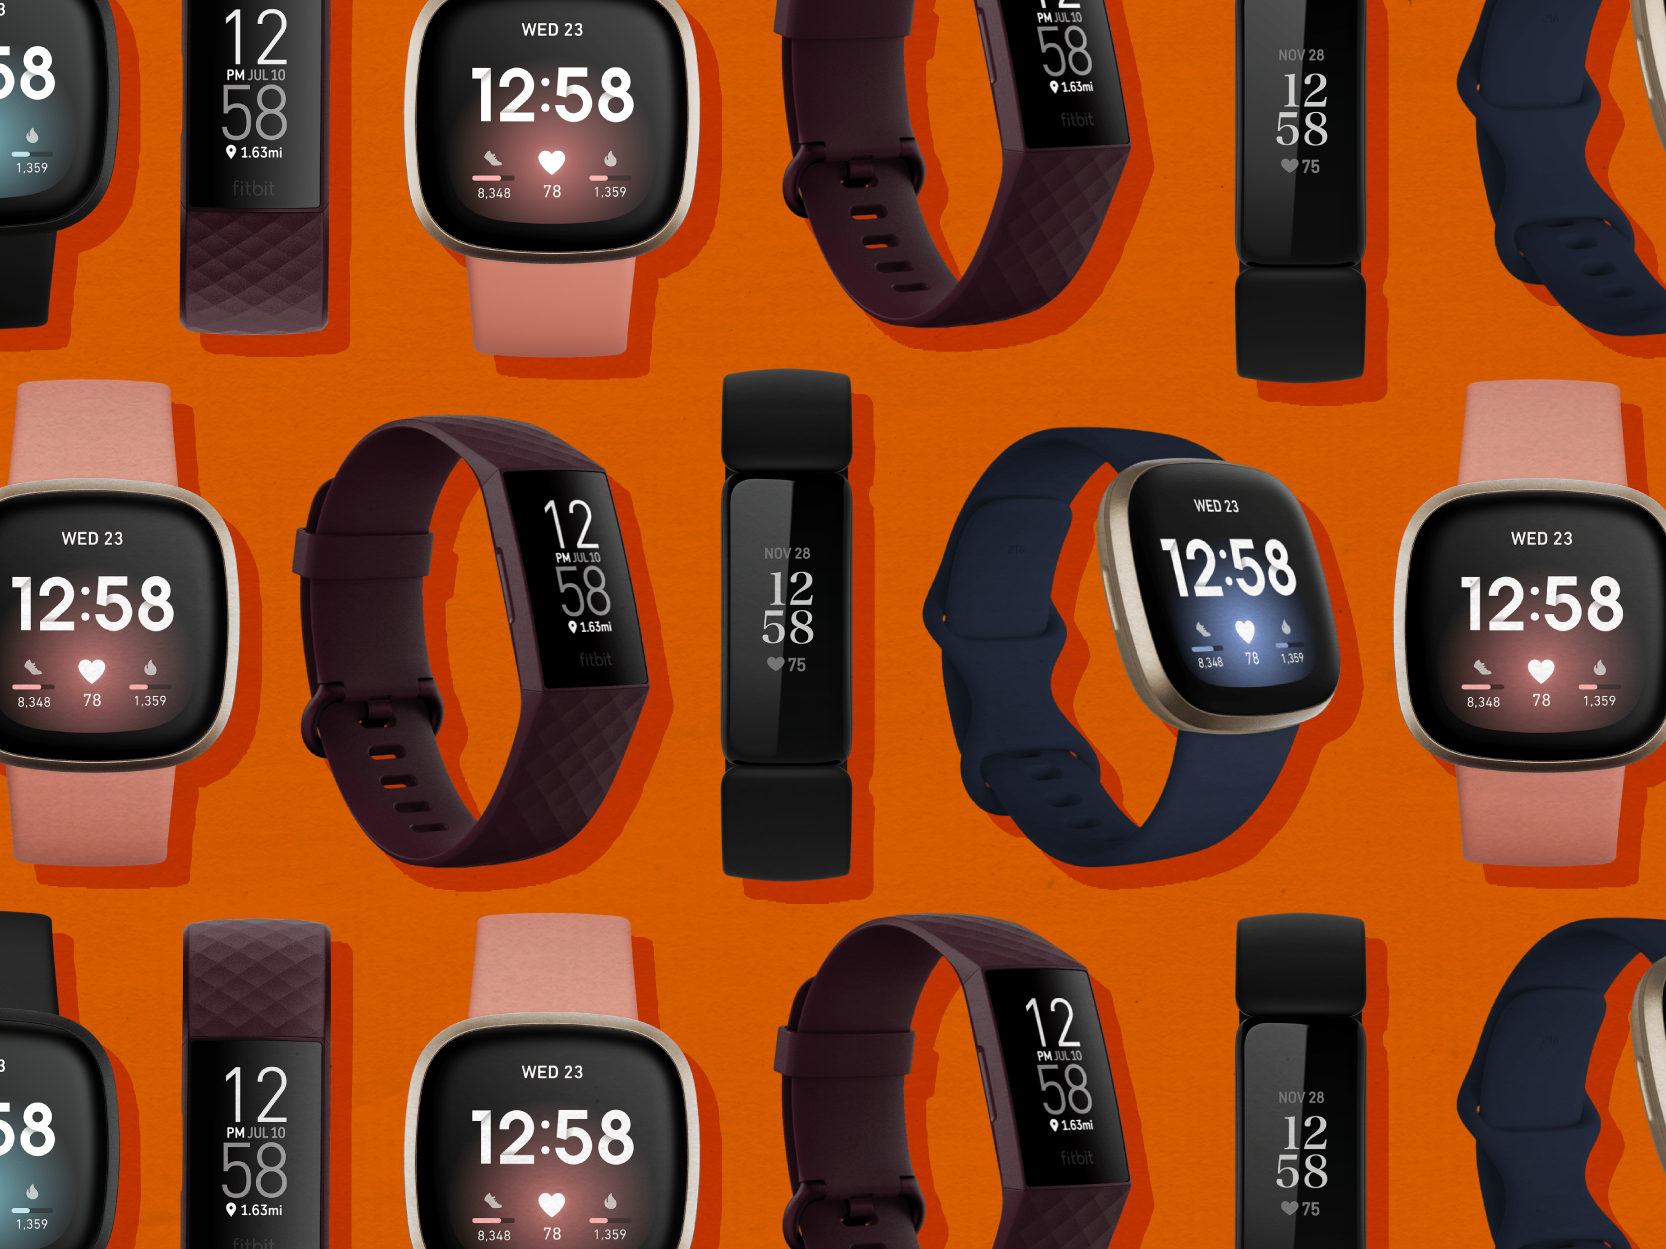 Nearly every Fitbit is on sale now for Amazon Prime Day 2021, including a rare $100 off the Sense and $45 off the Inspire 2